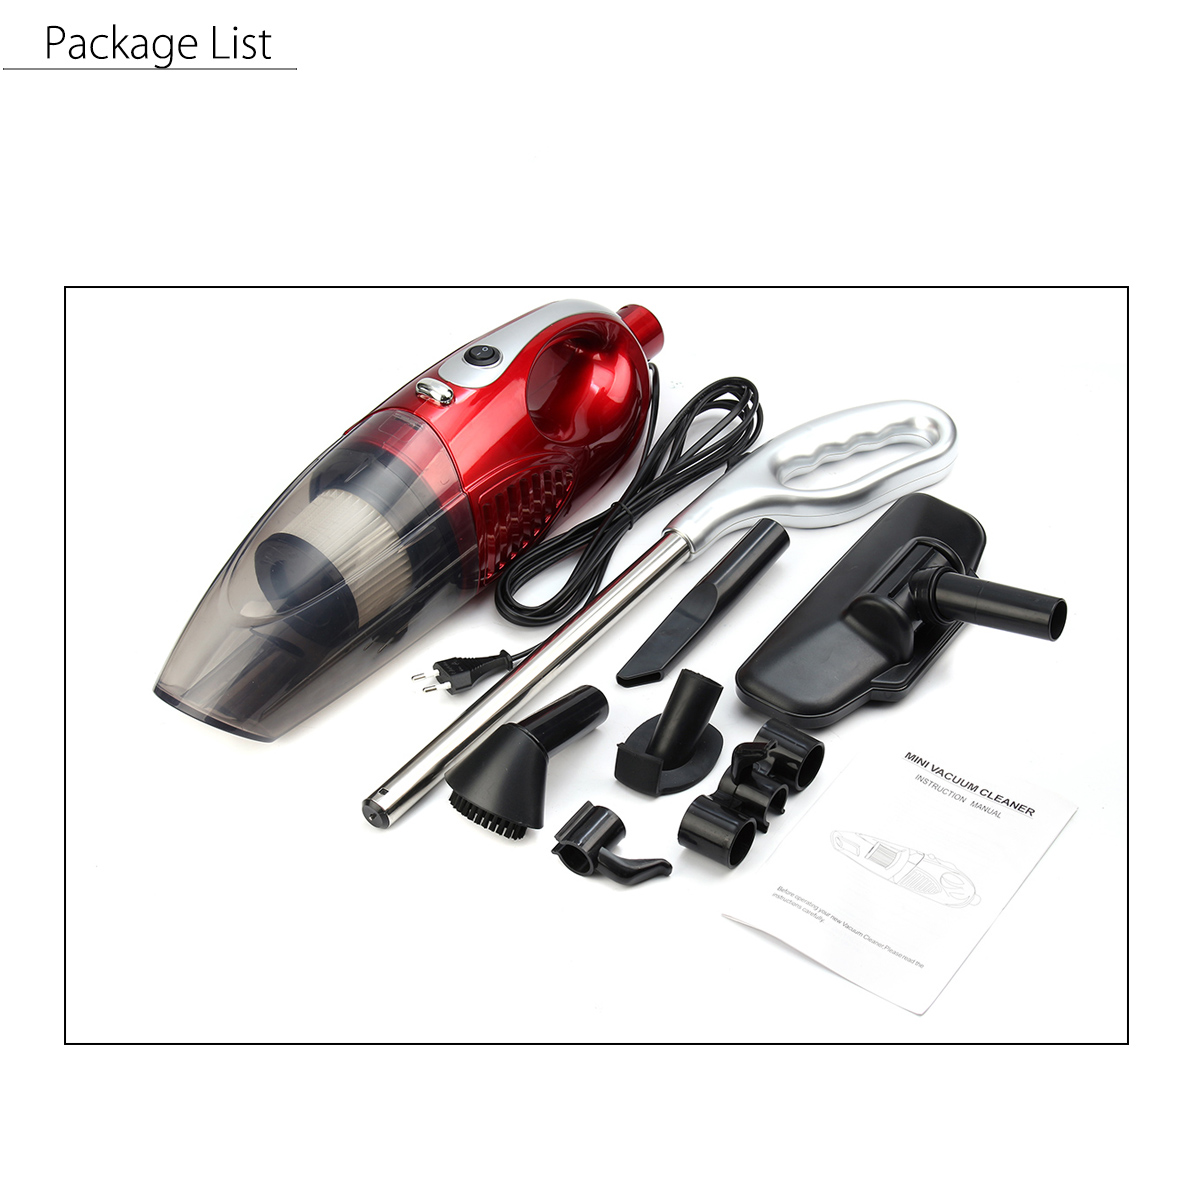 2 in 1 1200W Home Vacuum Cleaner Hand Held Portable Upright Bagless Lightweight